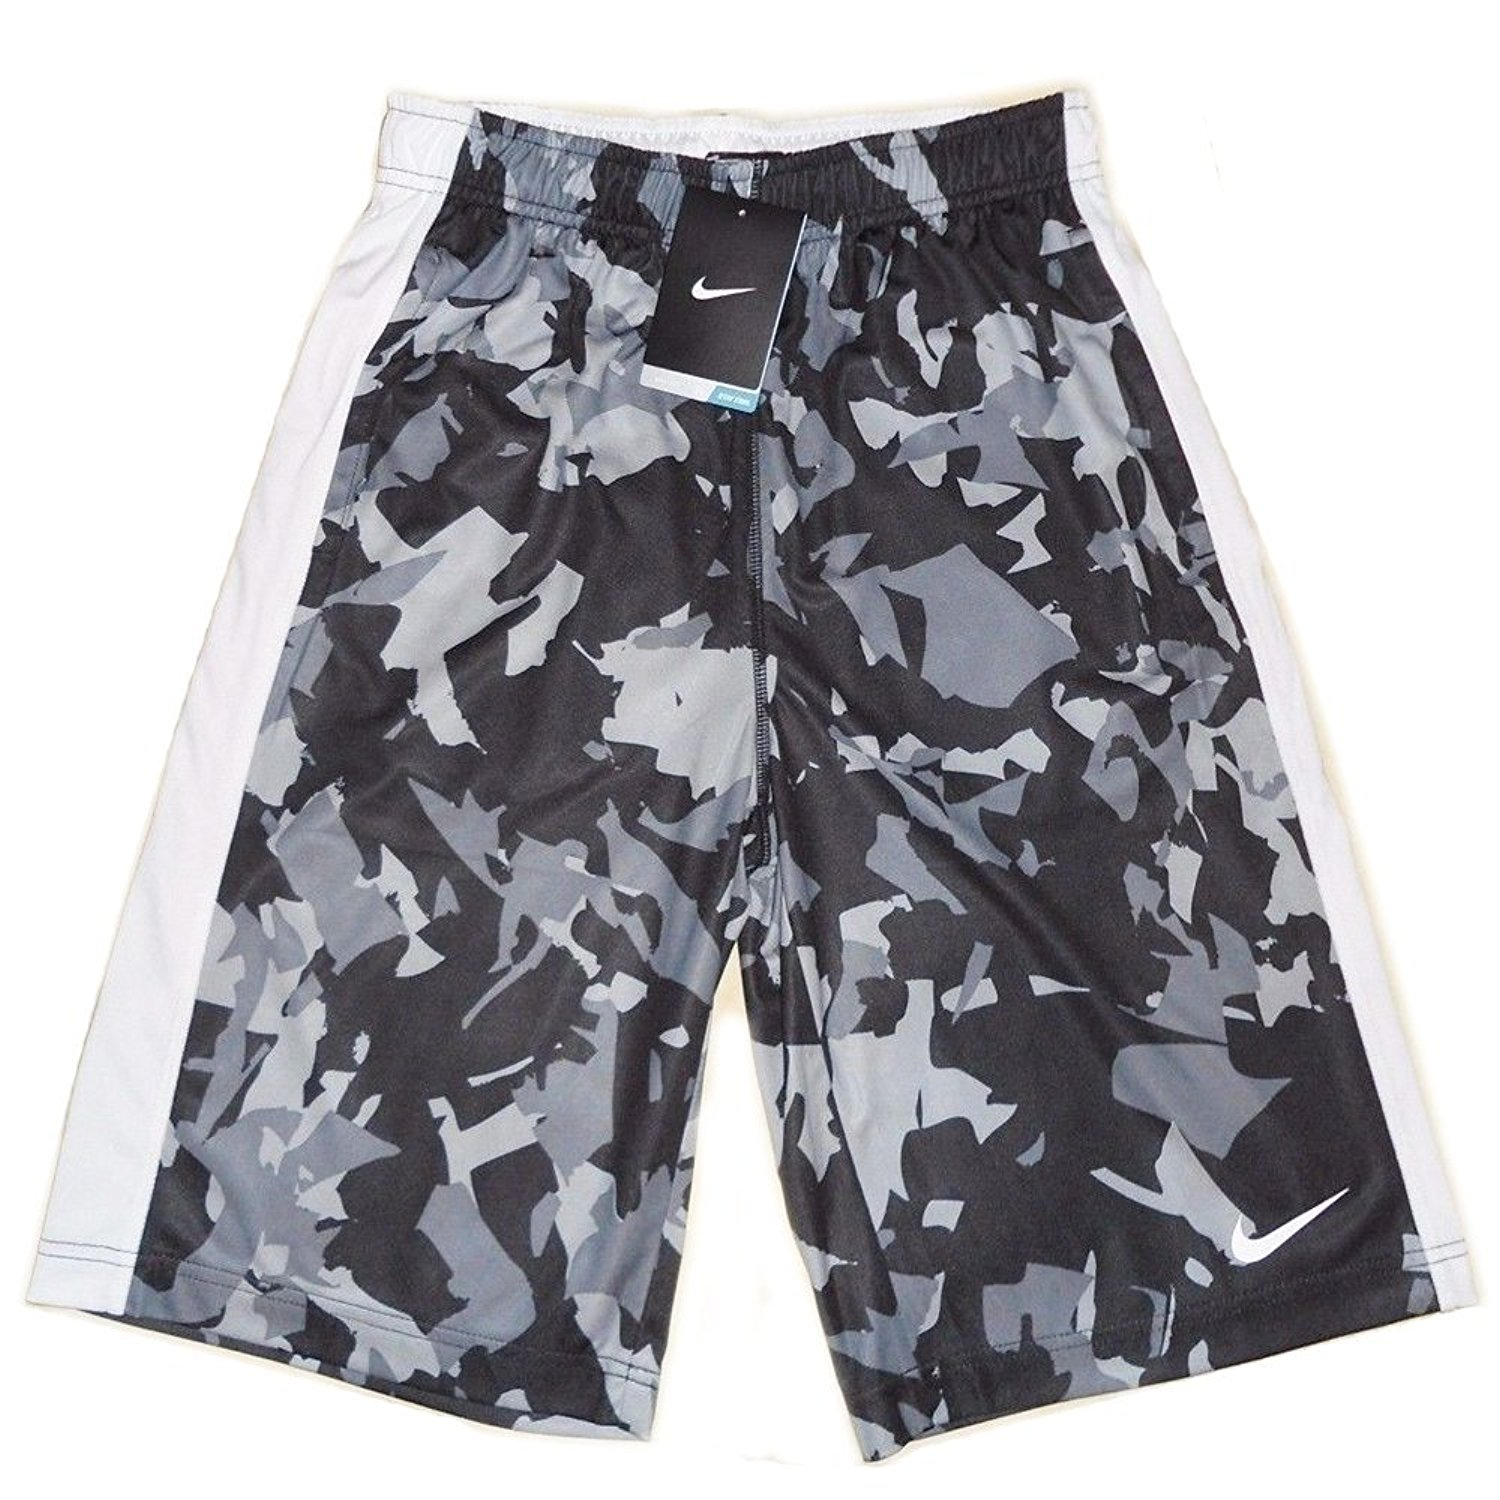 3c500de00c Get Quotations · Nike Youth Boys Fly Allover Print Graphic Shorts Grey Black